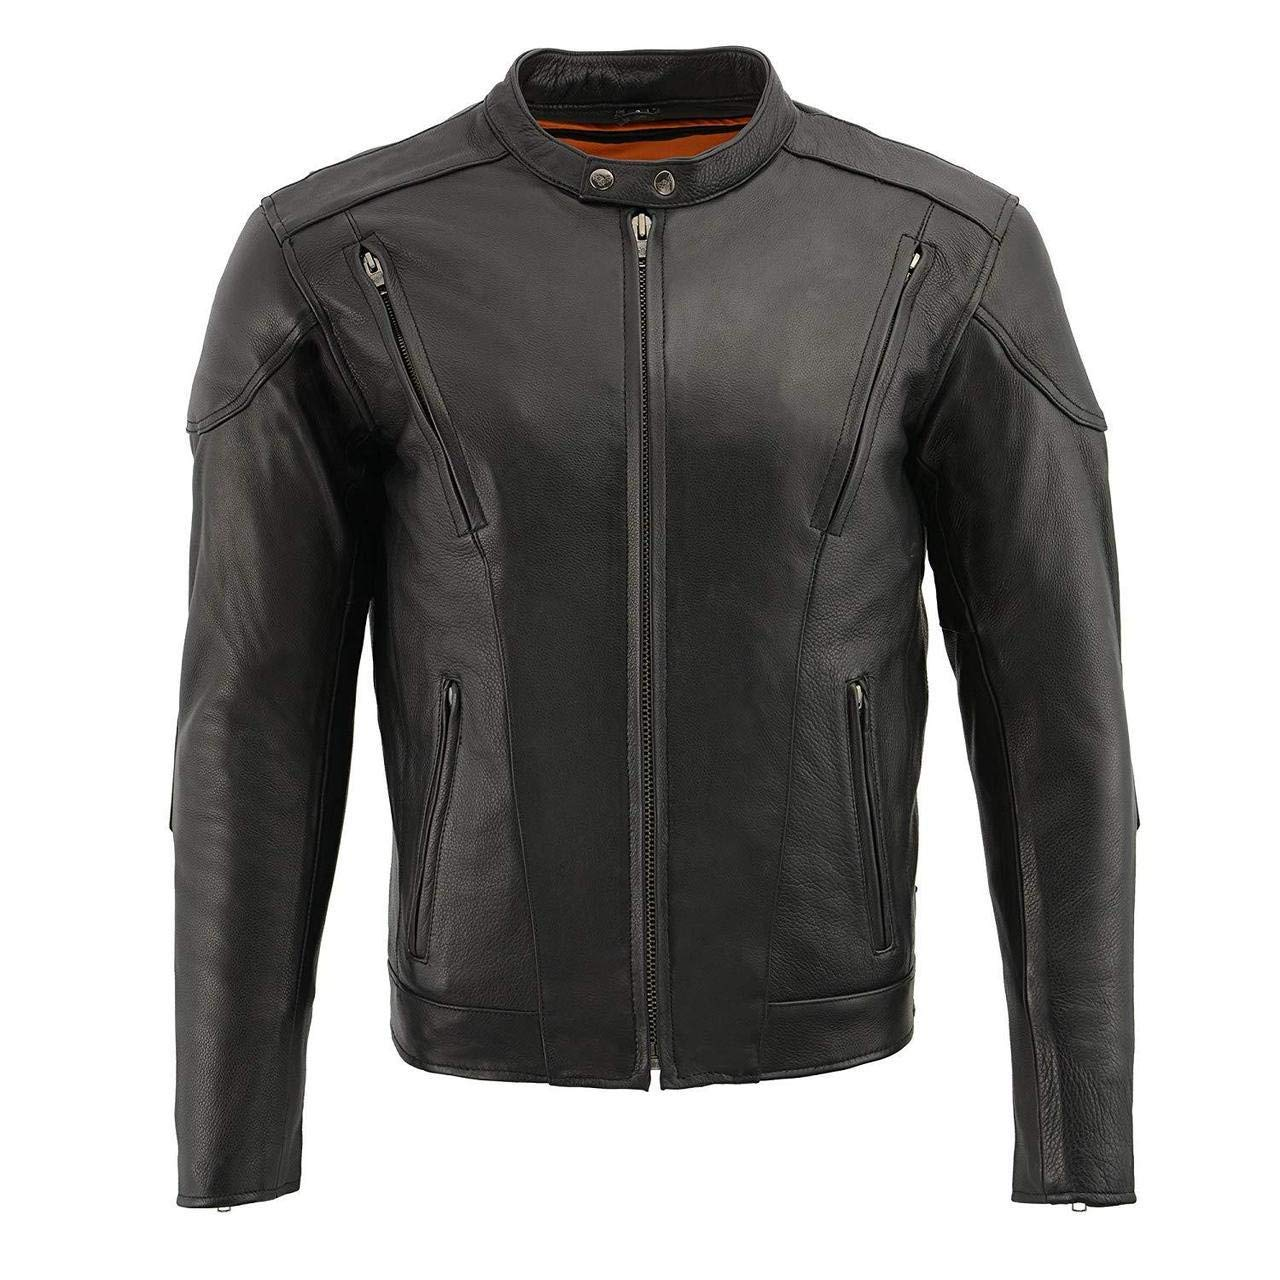 3XL Regular Dealer Leather MENS RIDING REFLECTIVE SKULLS CROSSOVER LEATHER JACKET VENTED THICK LEATHER NEW